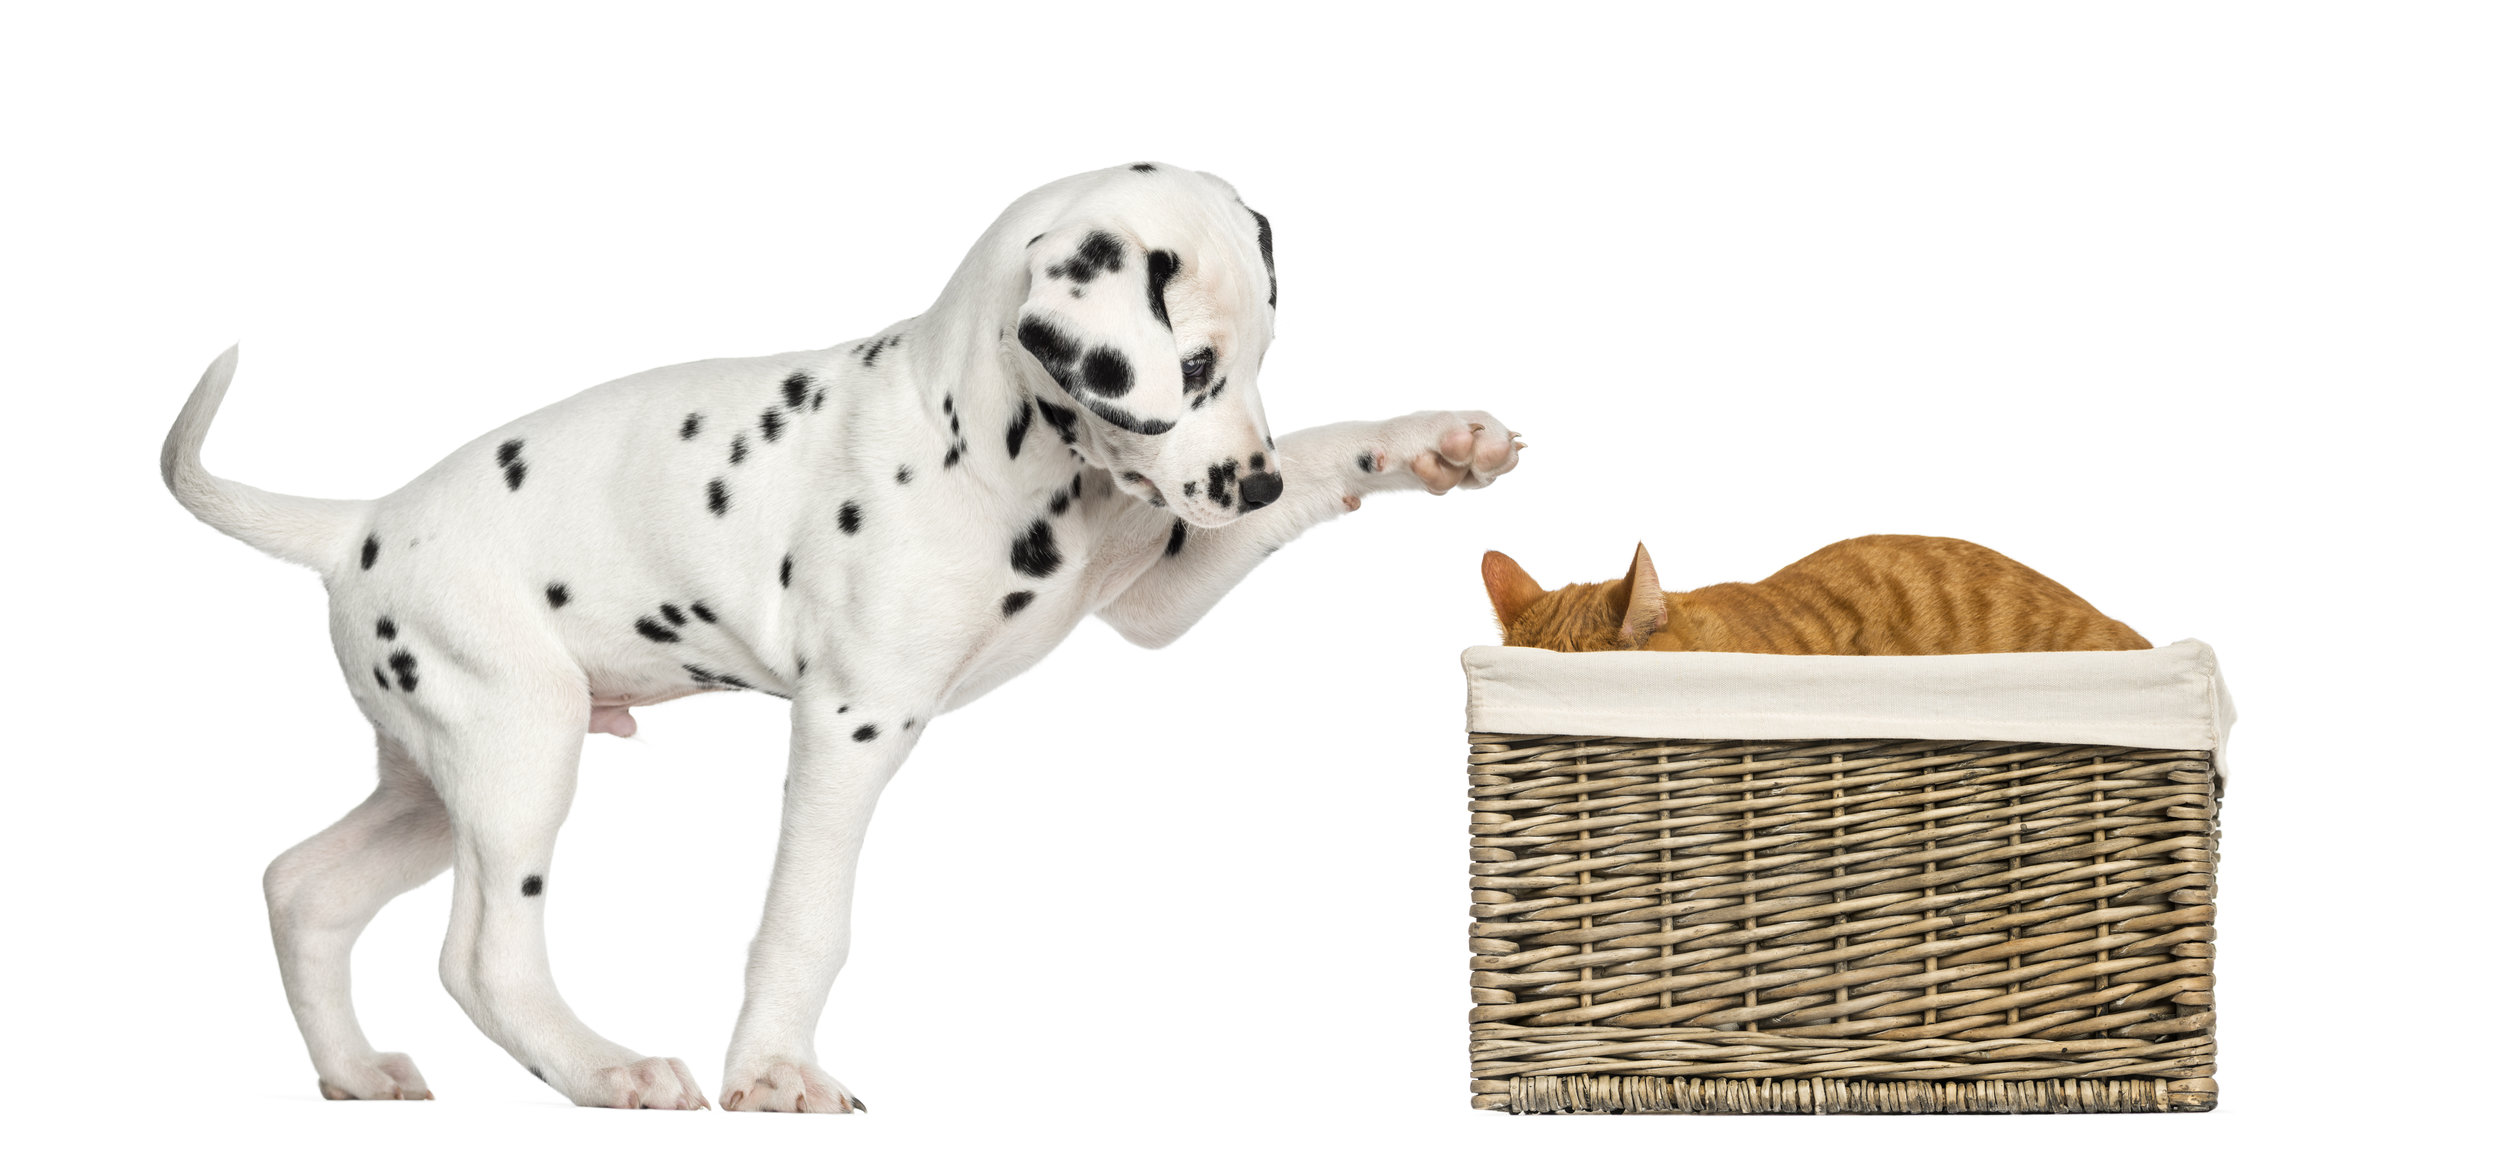 dalmatian-puppy-playing-with-a-cat-hiding-in-a-PQKWCXA.jpg